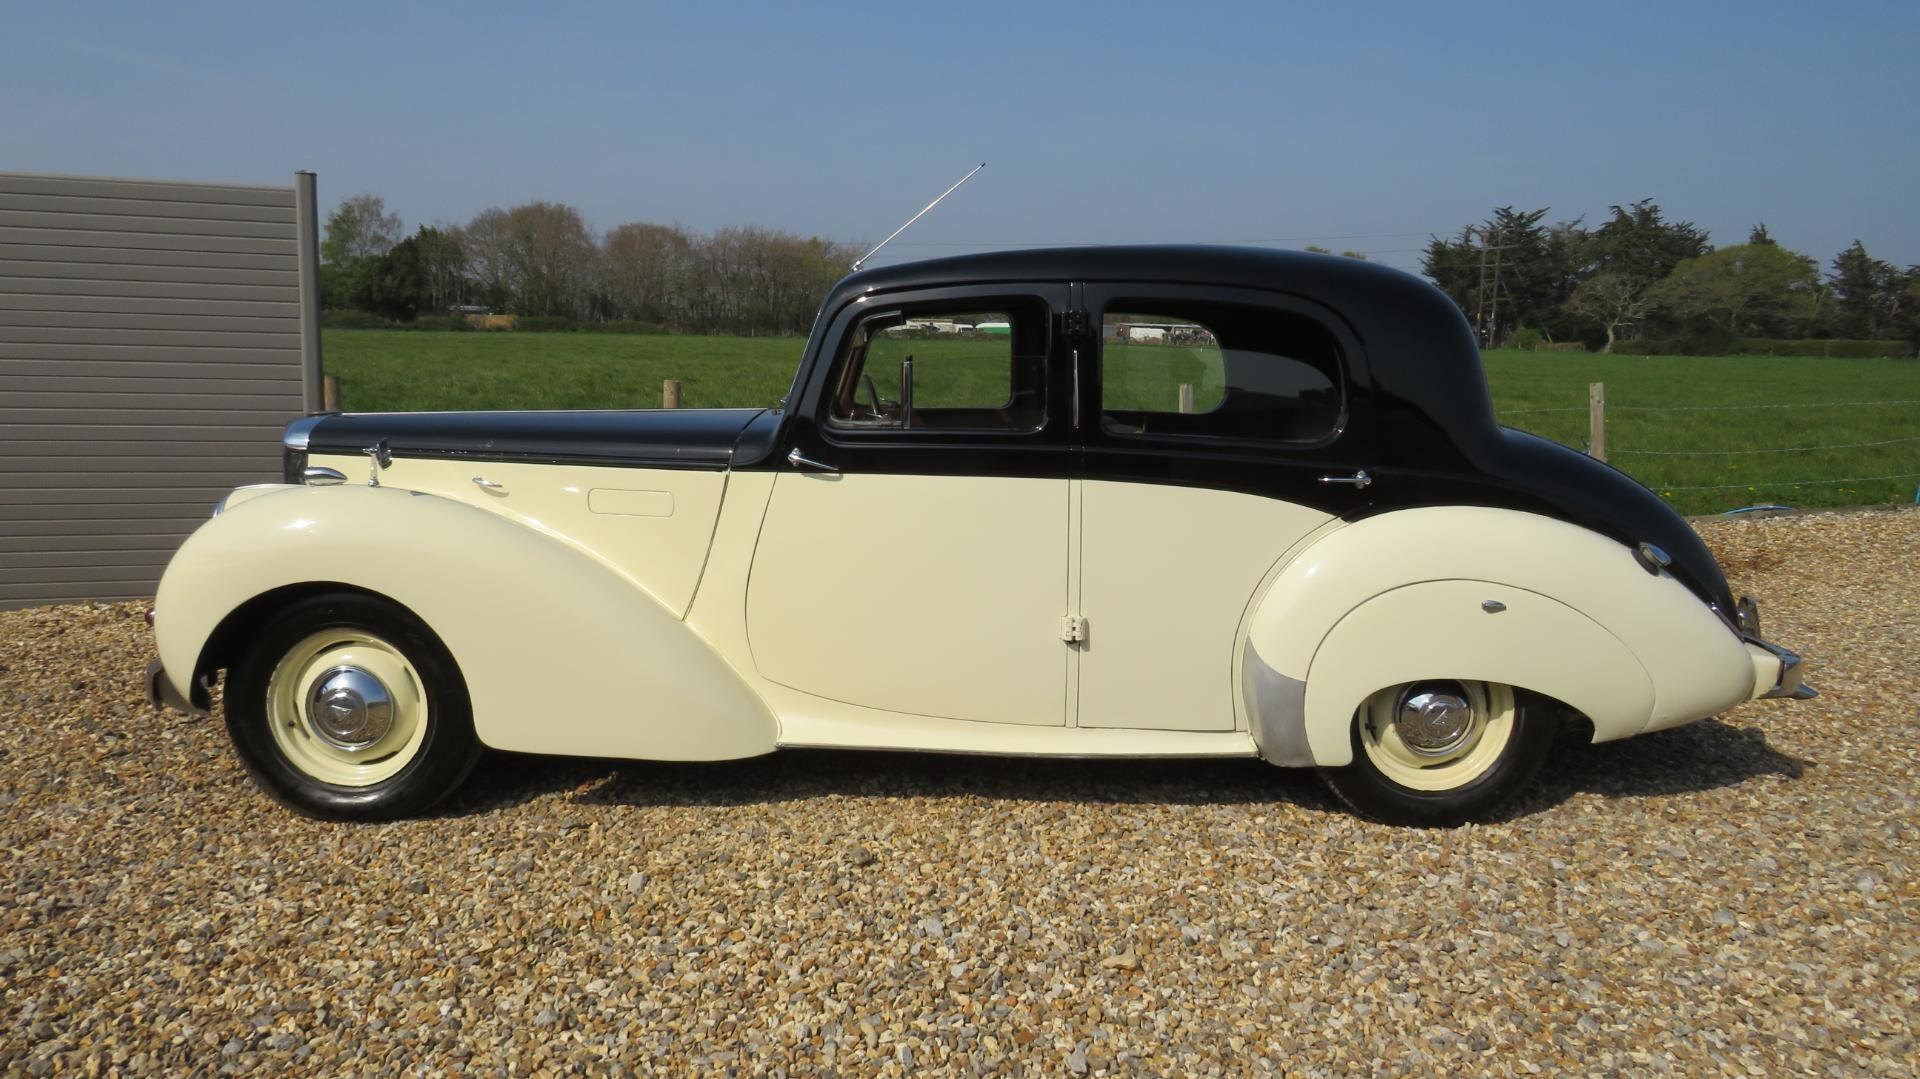 1952 Alvis TA 21 saloon For Sale (picture 1 of 1)